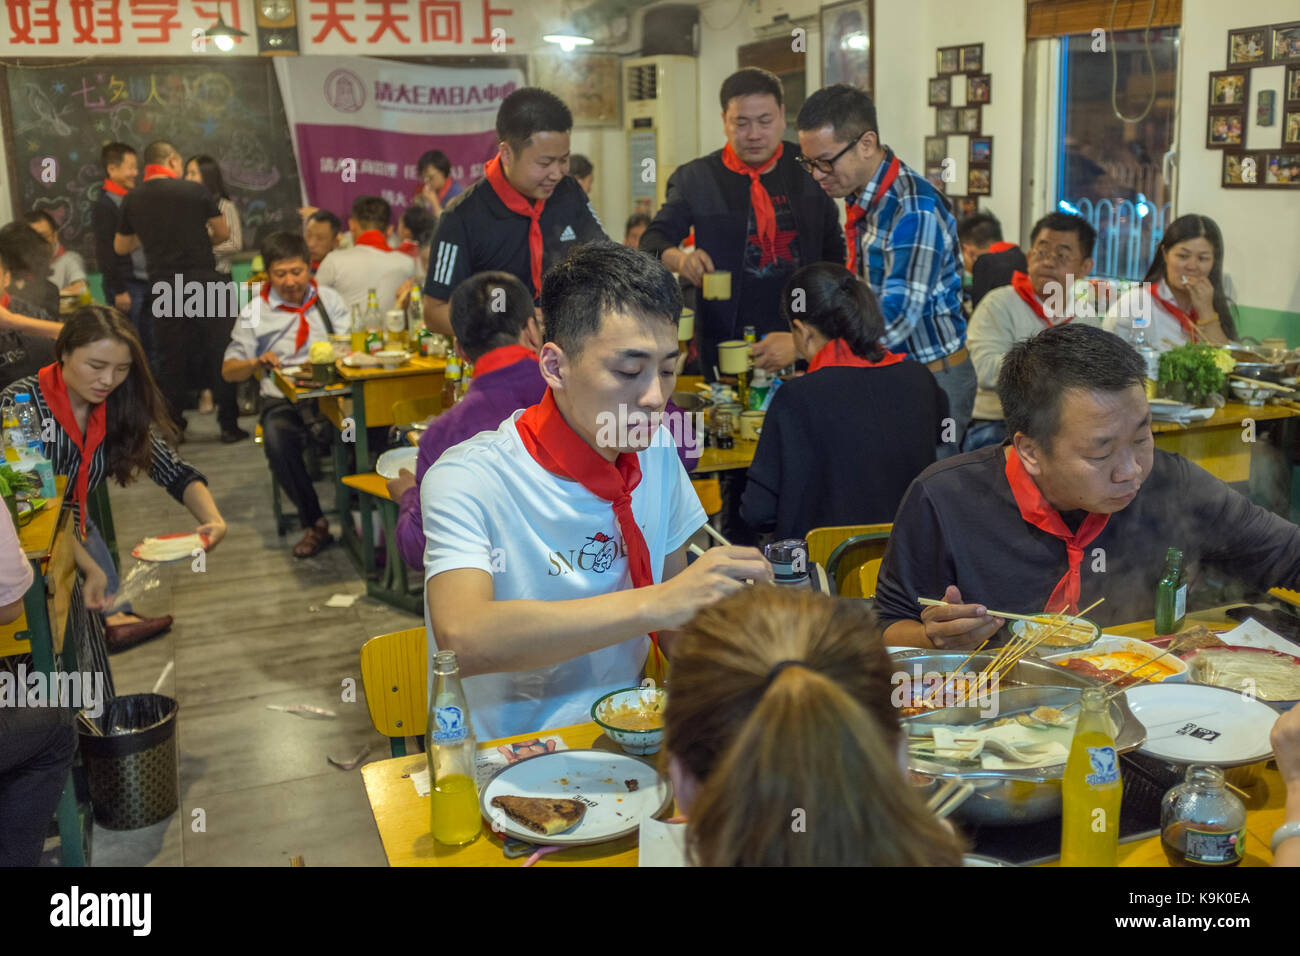 Beijing, China  23rd Sep, 2017. Chinese guests wear red scarves of Young Pioneers in a hot pot restaurant in Beijing, - Stock Image